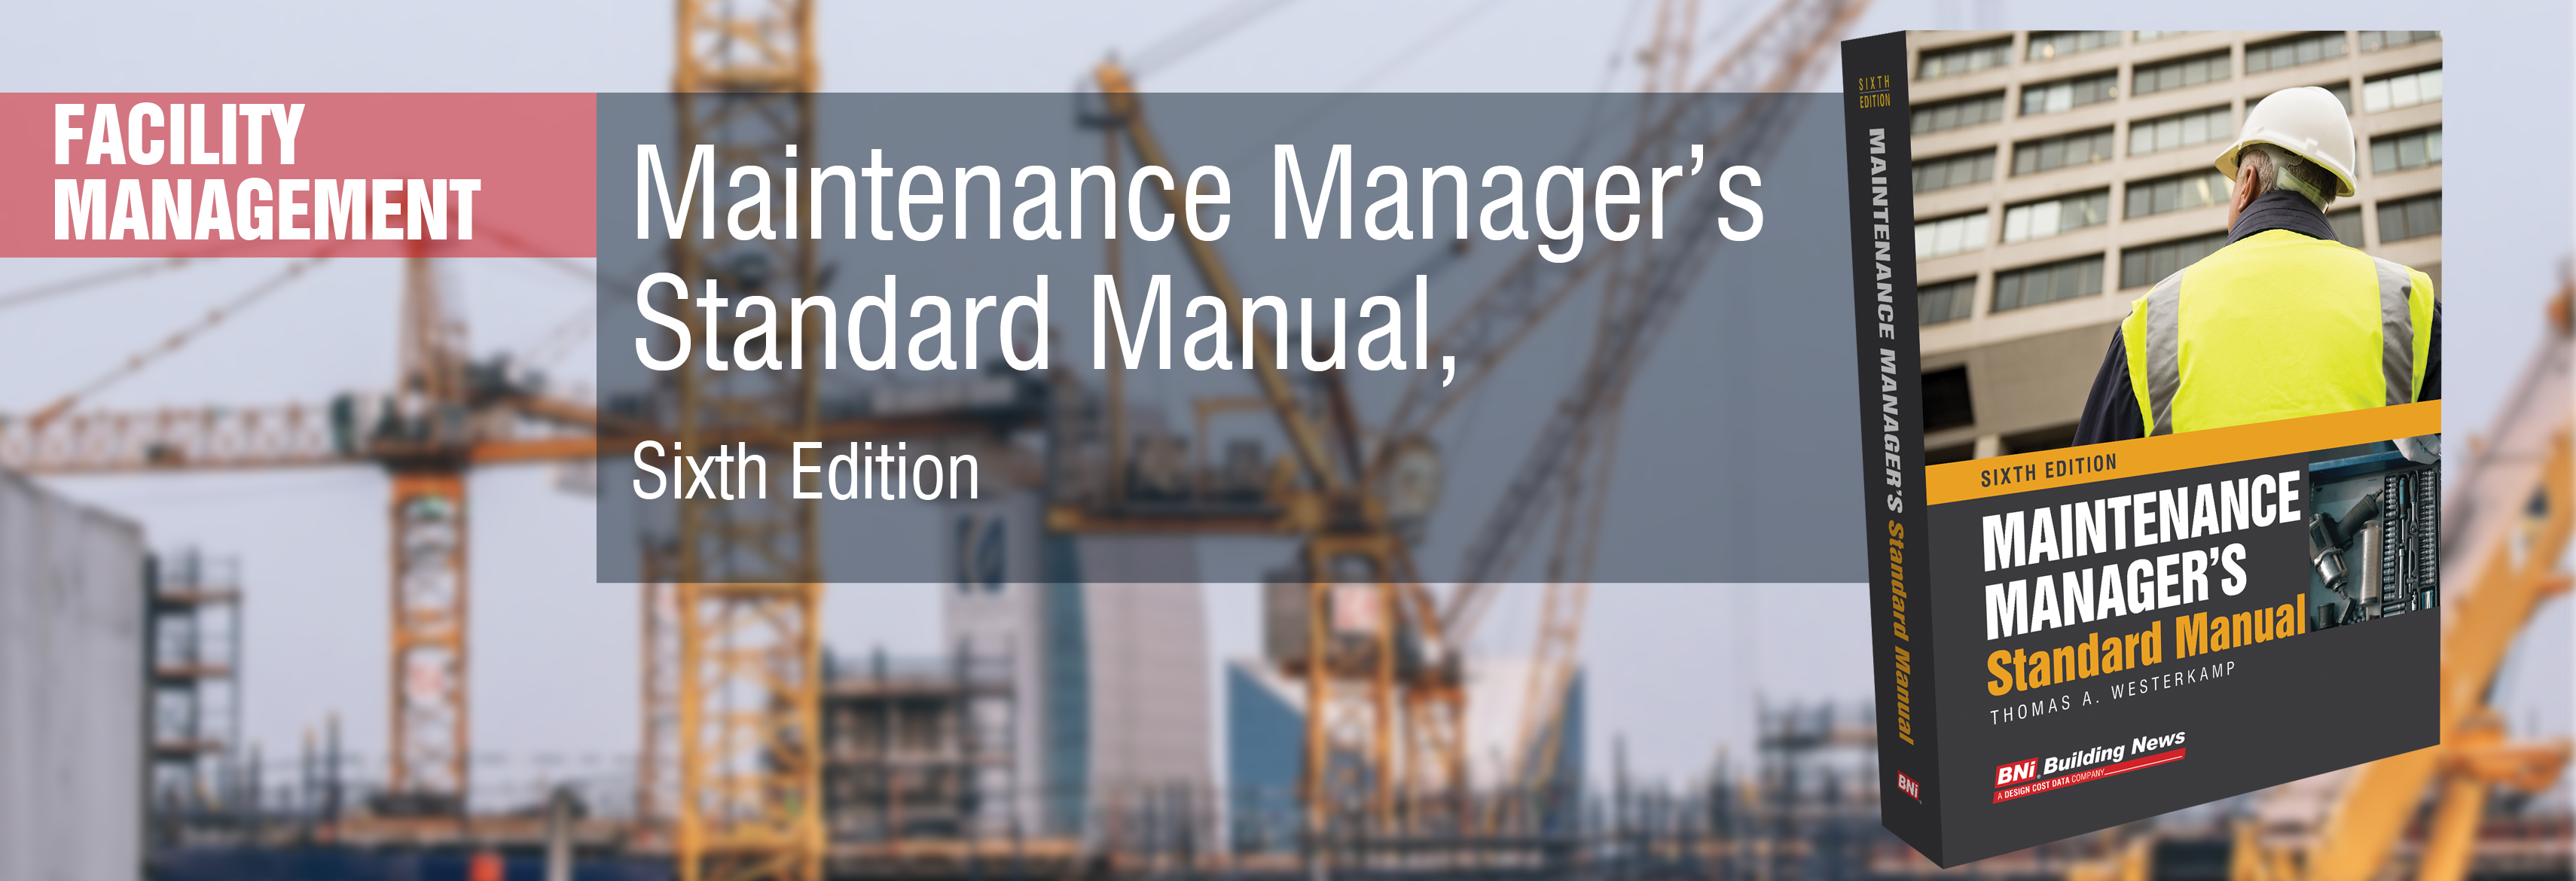 Maintenance Manager's Standard Manual